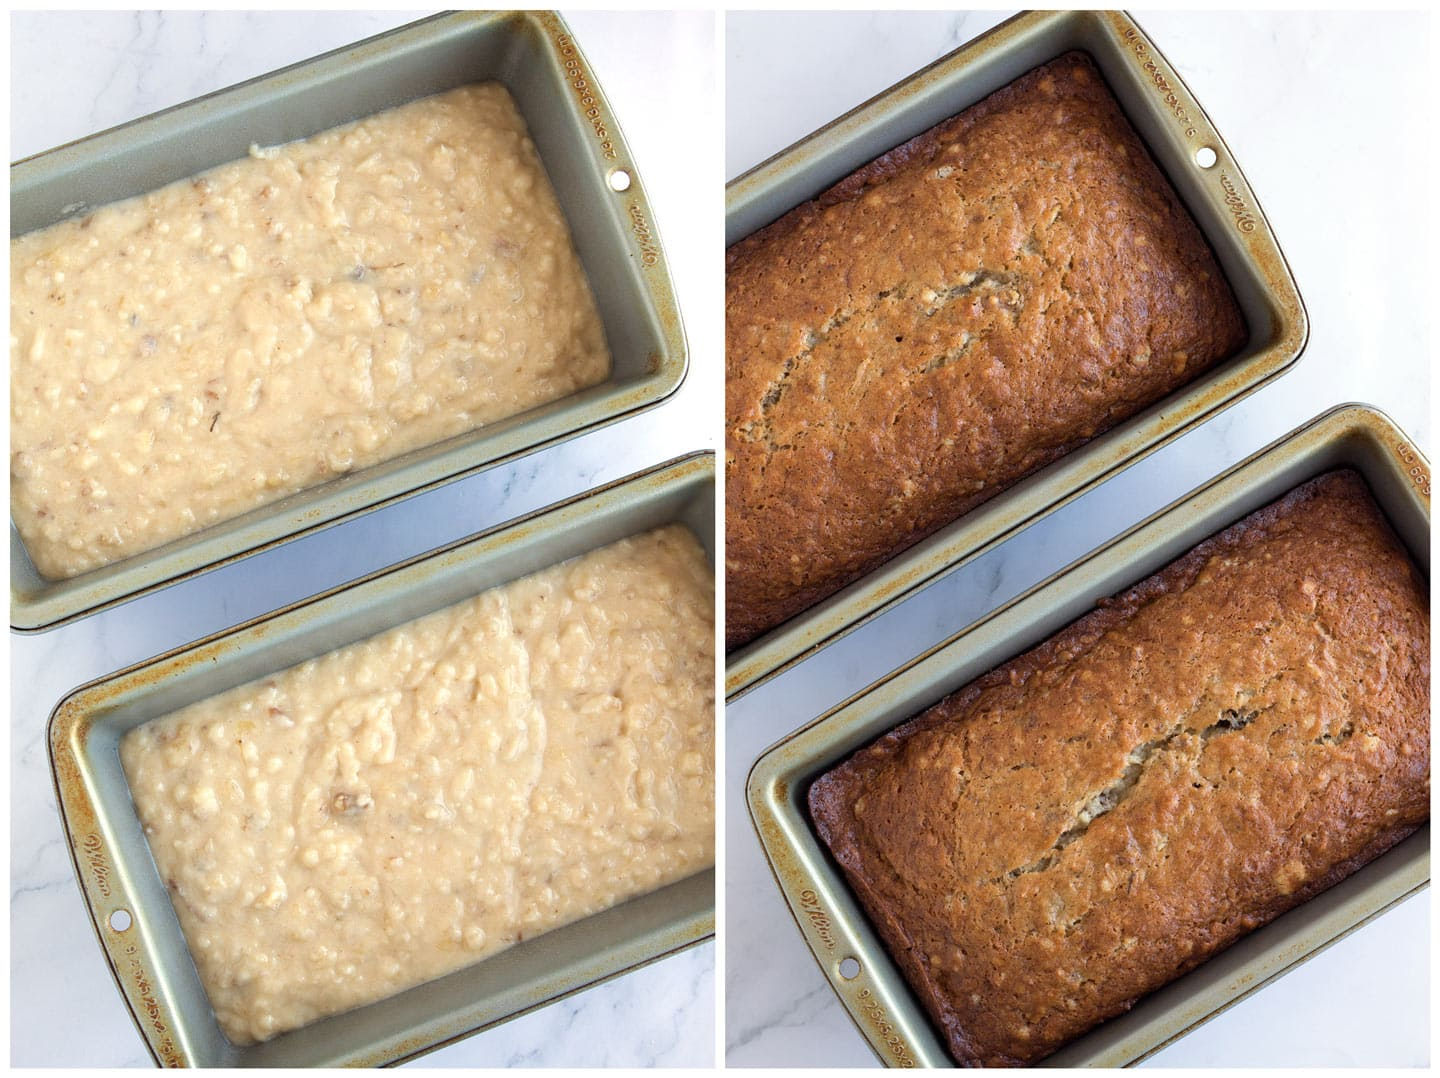 Batter in loaf pans before and after baking